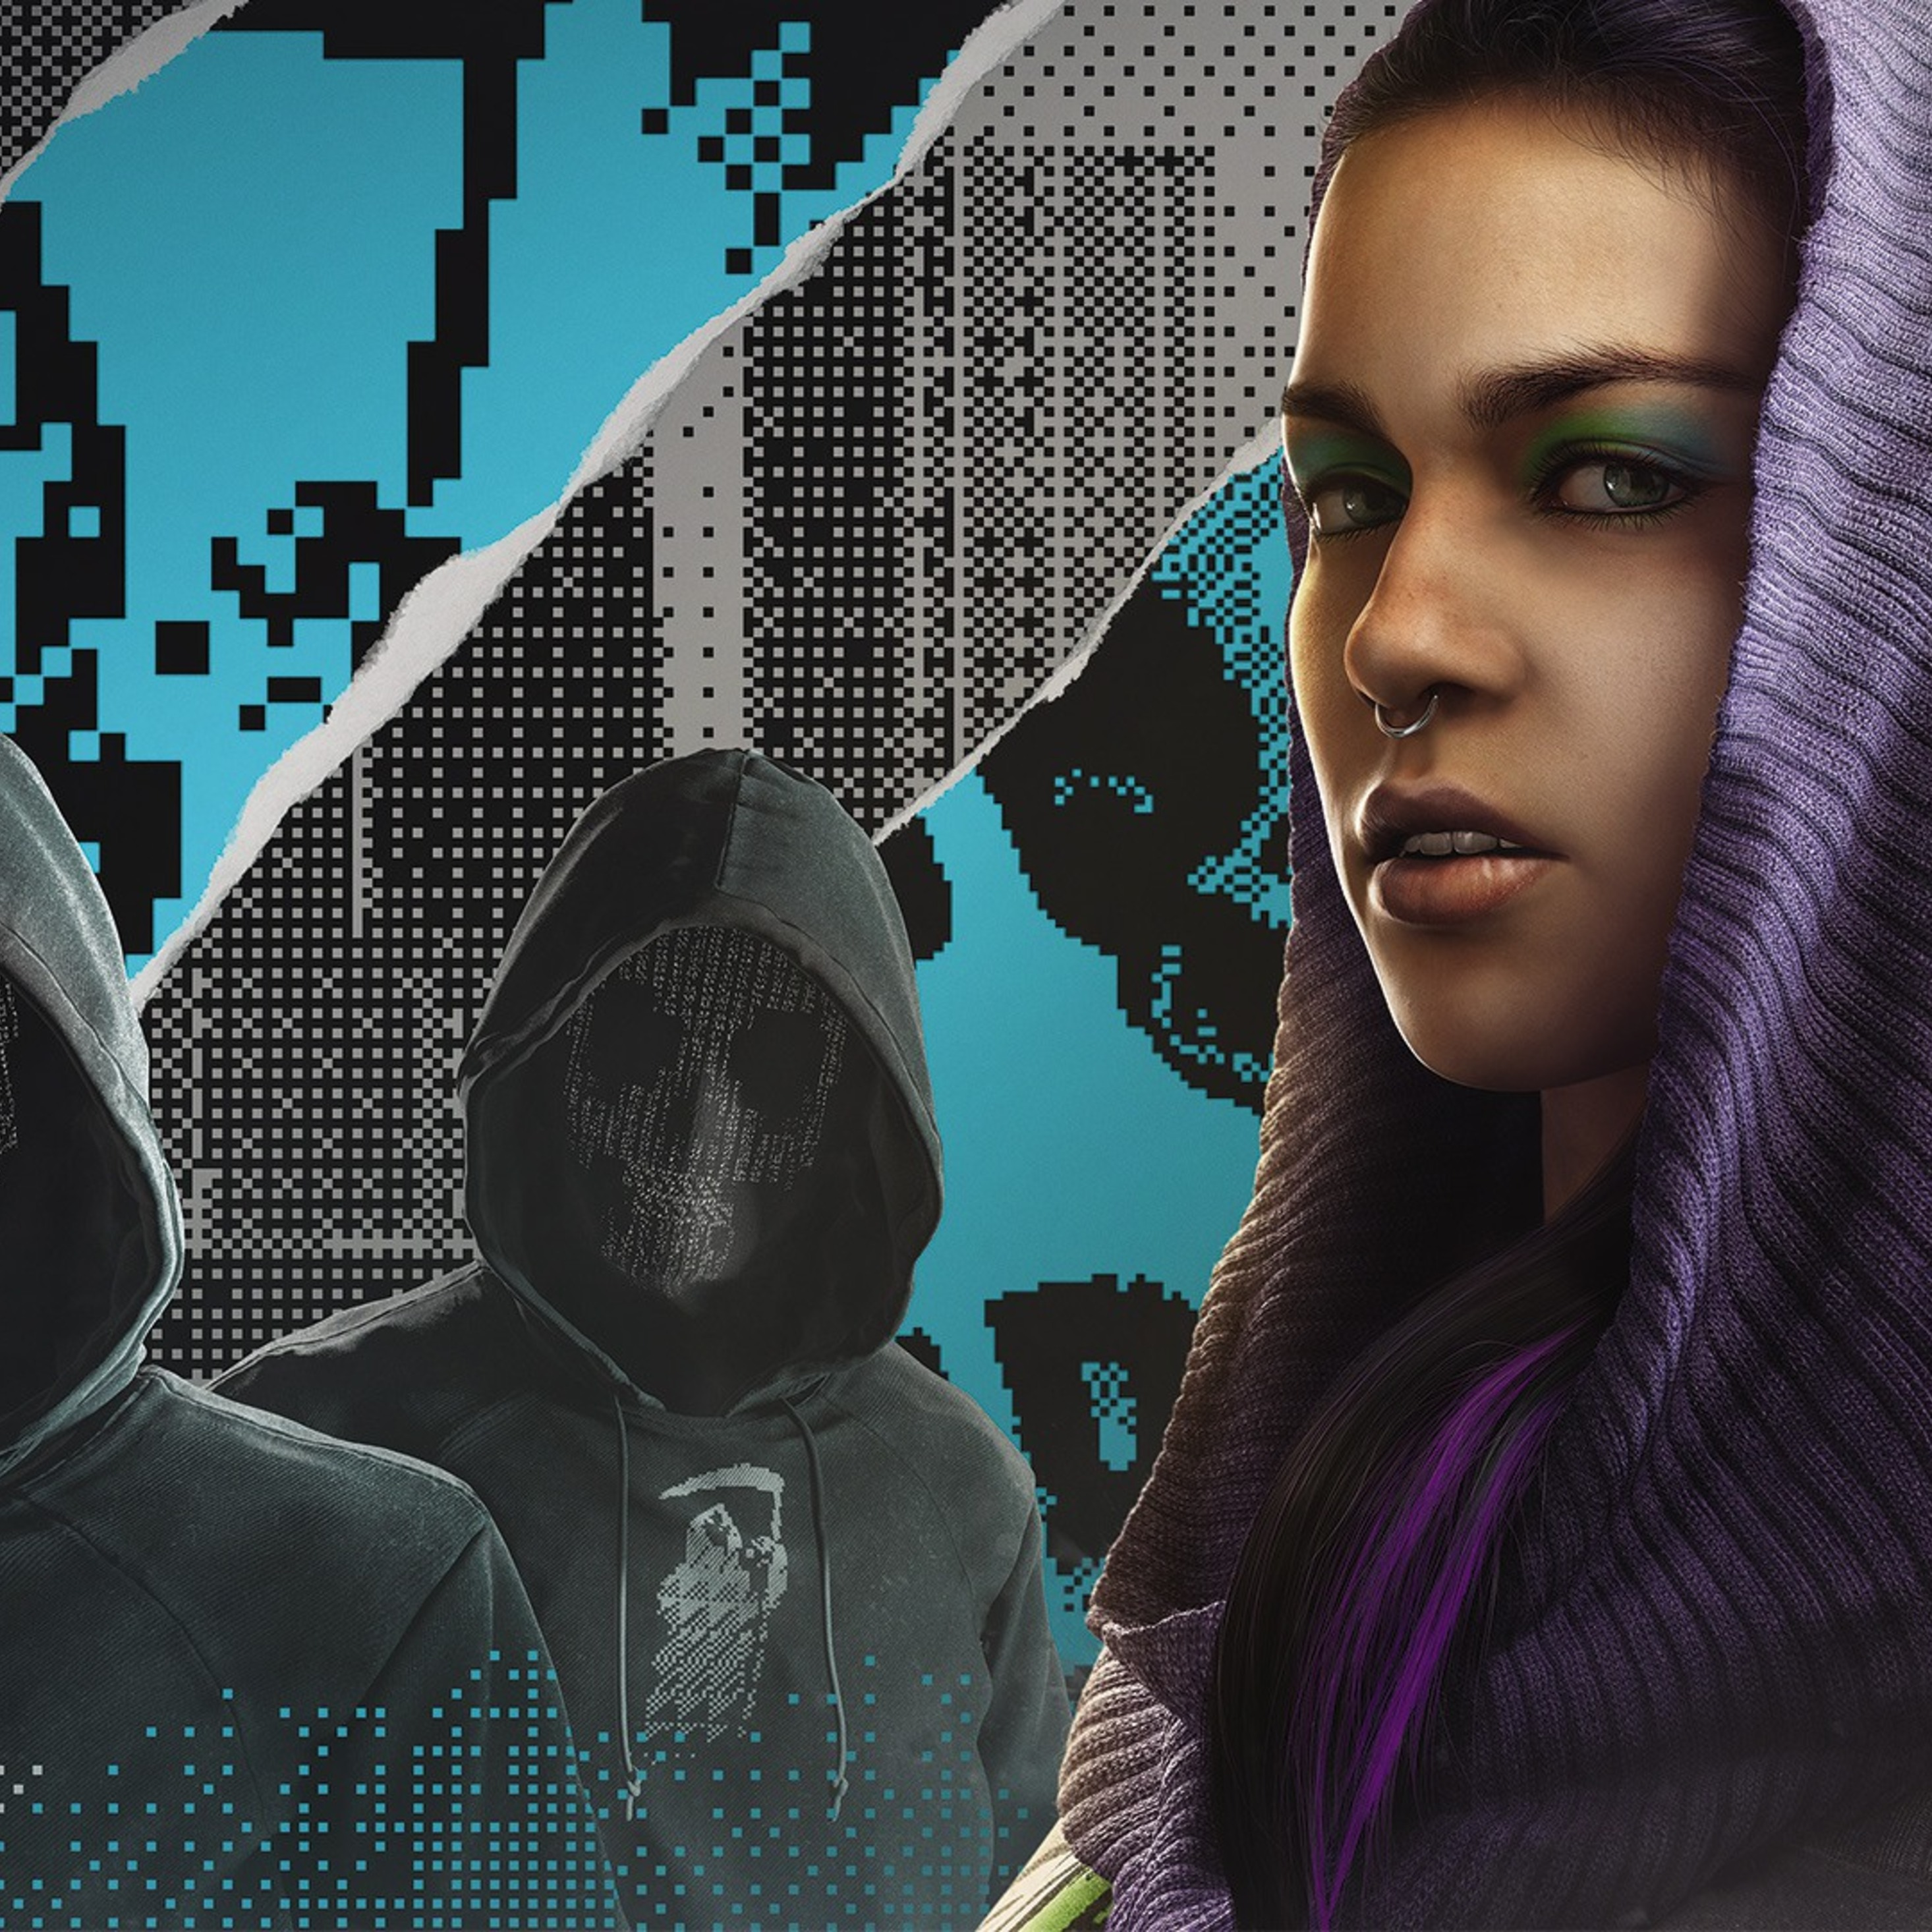 watch dogs 2 download ipad